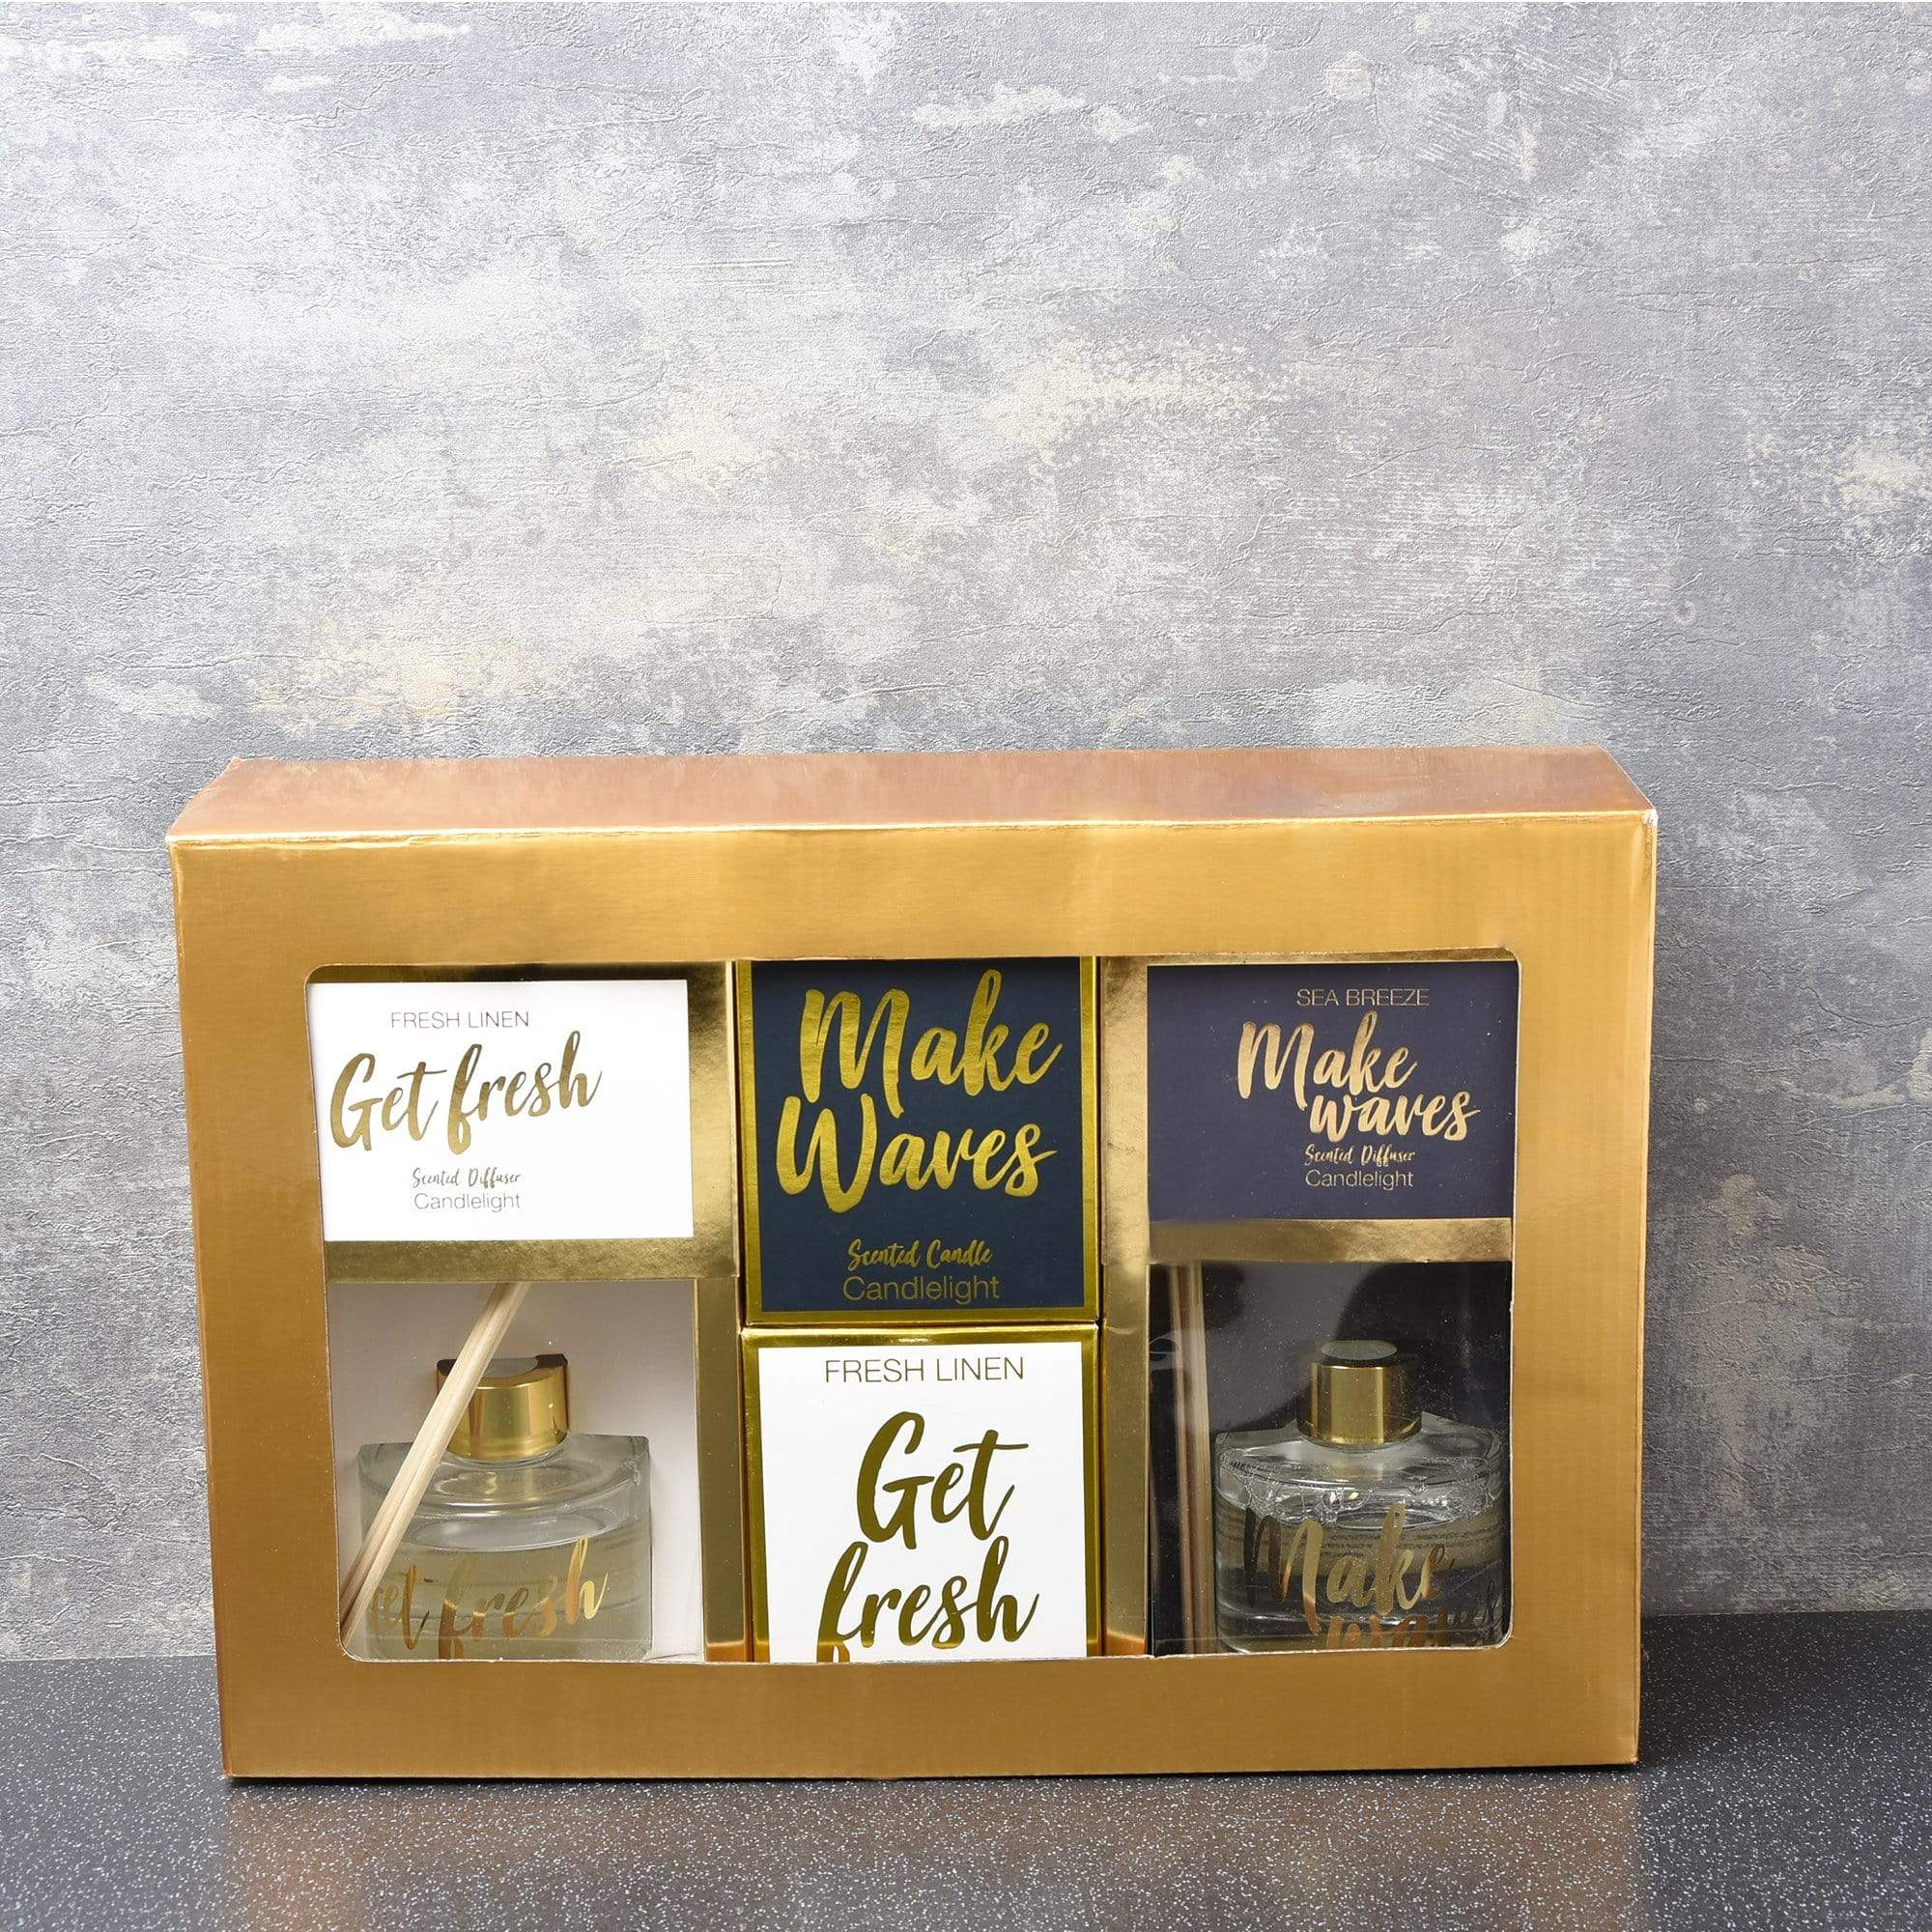 Candlelight Home Boxed Candle 4PC Brights Gift Set Get & Fresh Make Waves in  Gift Box 1PK